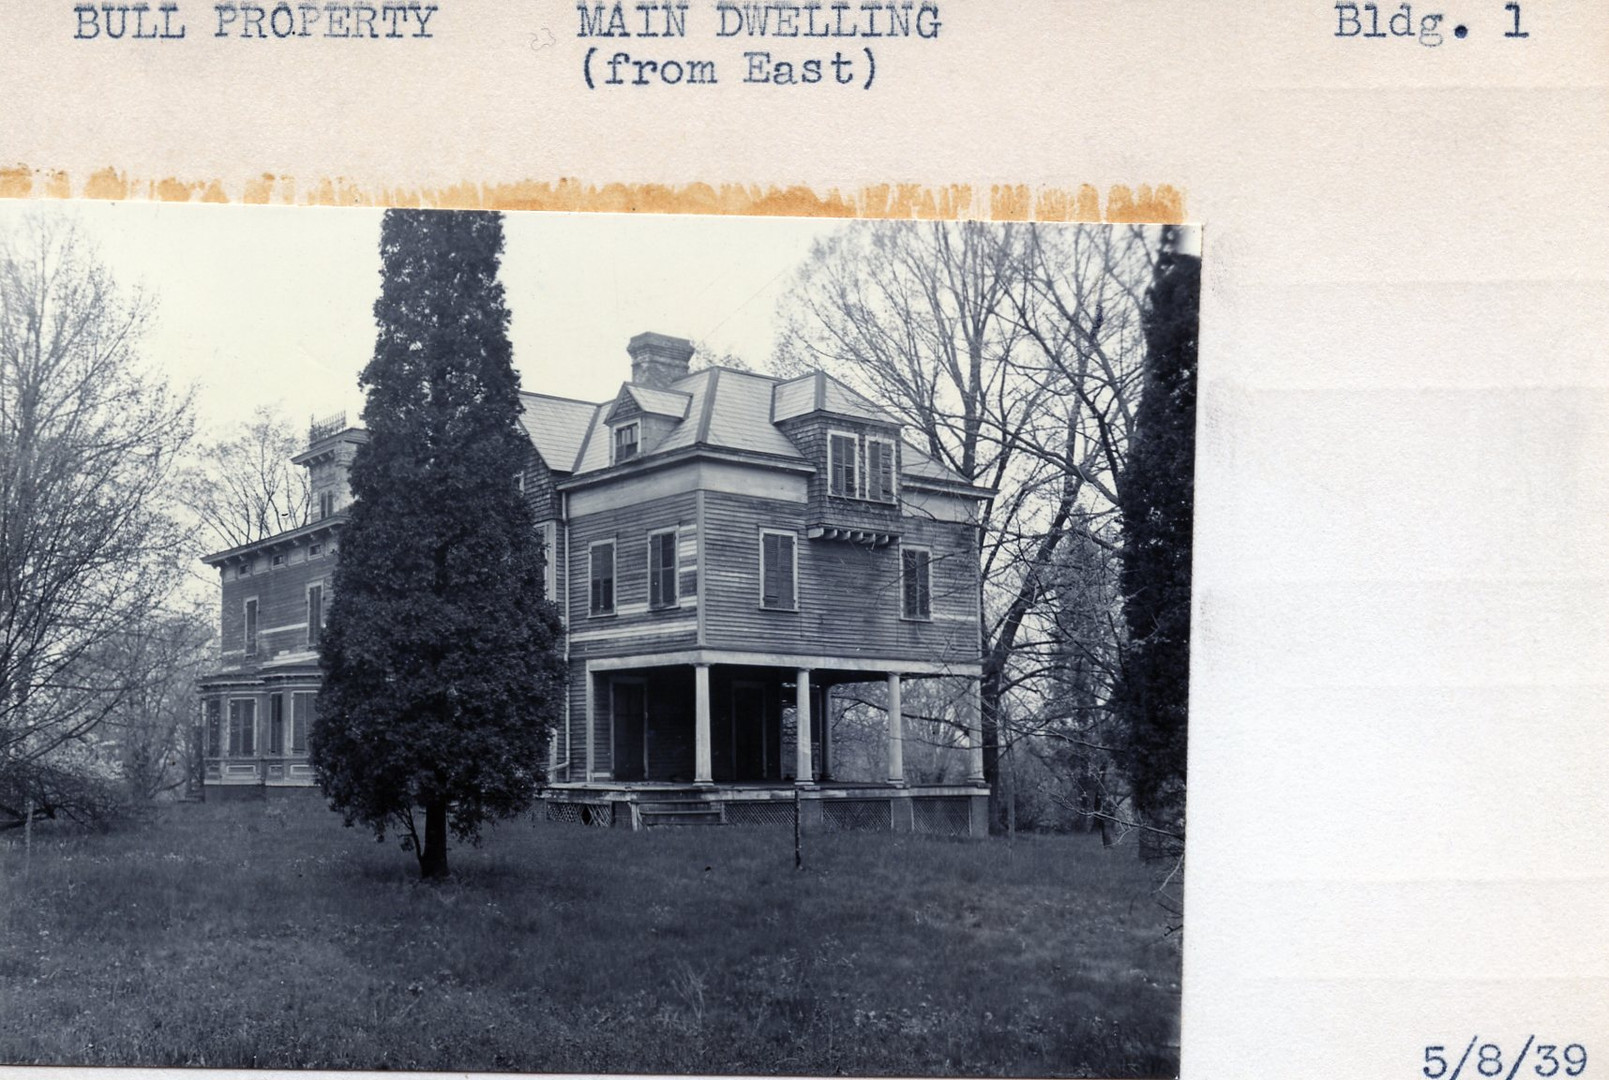 Bull Property, Main Dwelling, Building #1, 5/8/39